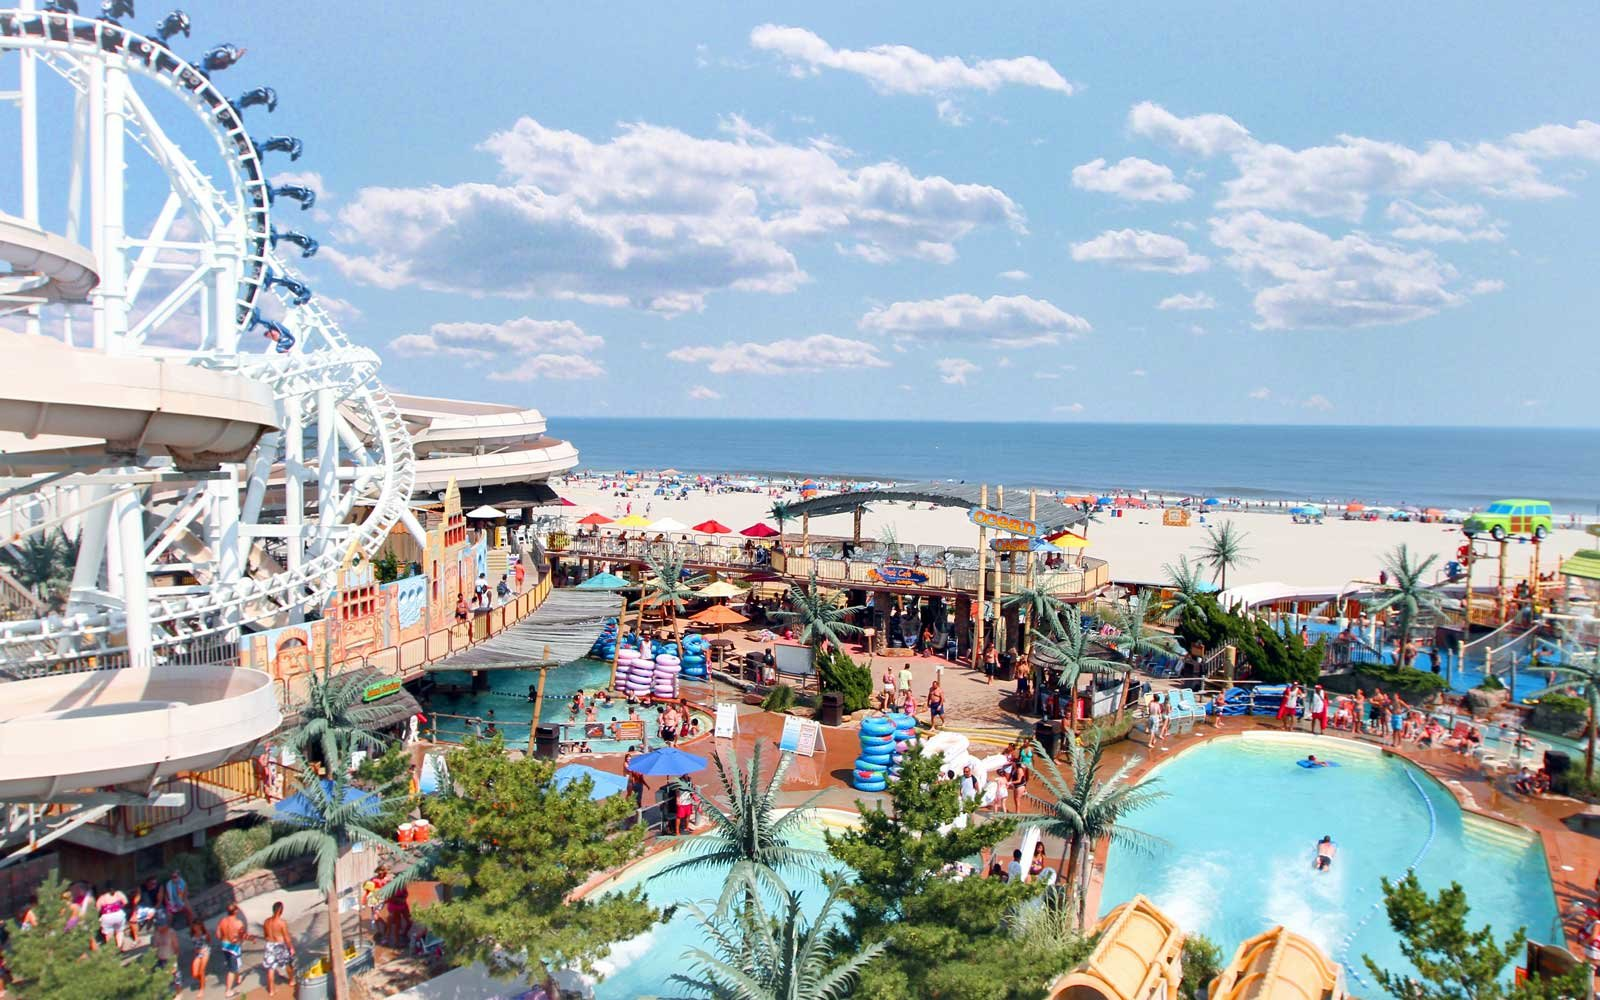 Morey's Piers and Beachfront Water Parks Wildwood, NJ